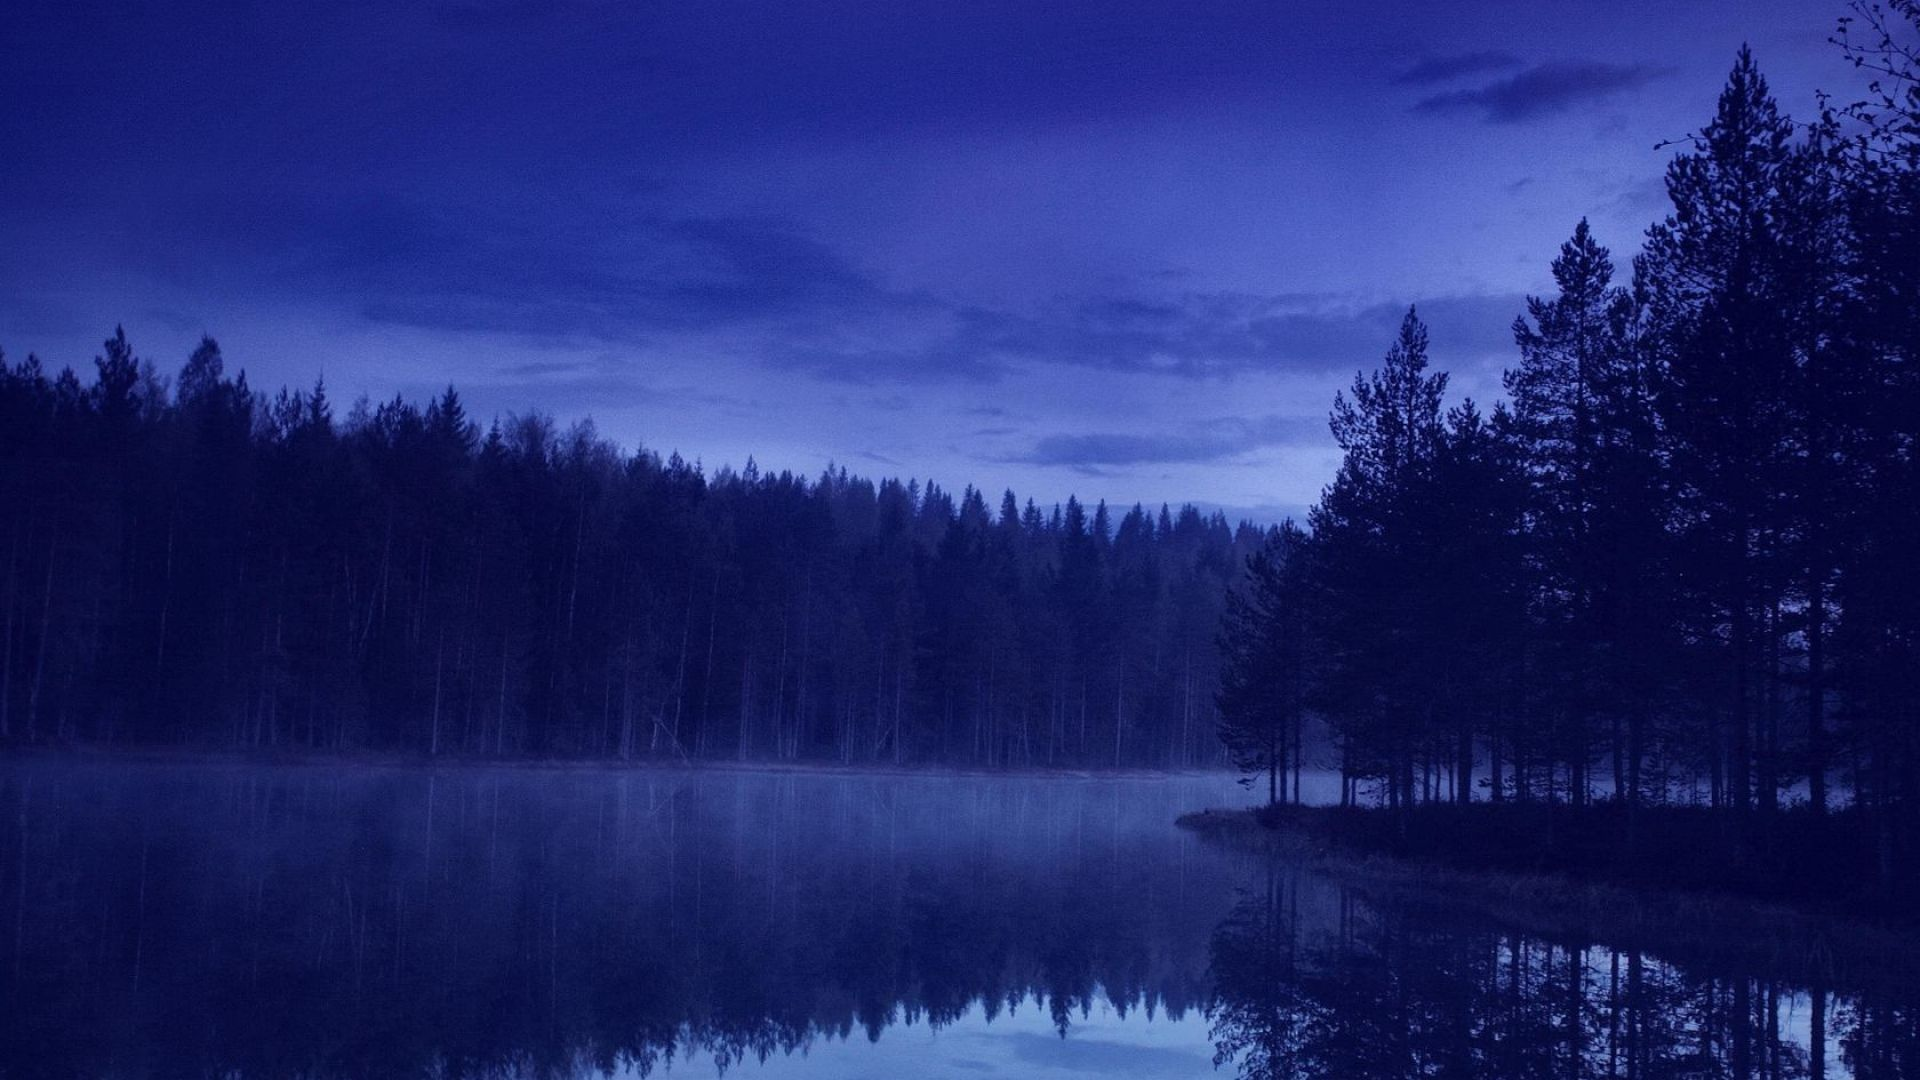 Night Forest Google Search Magic In The Woods Pinterest